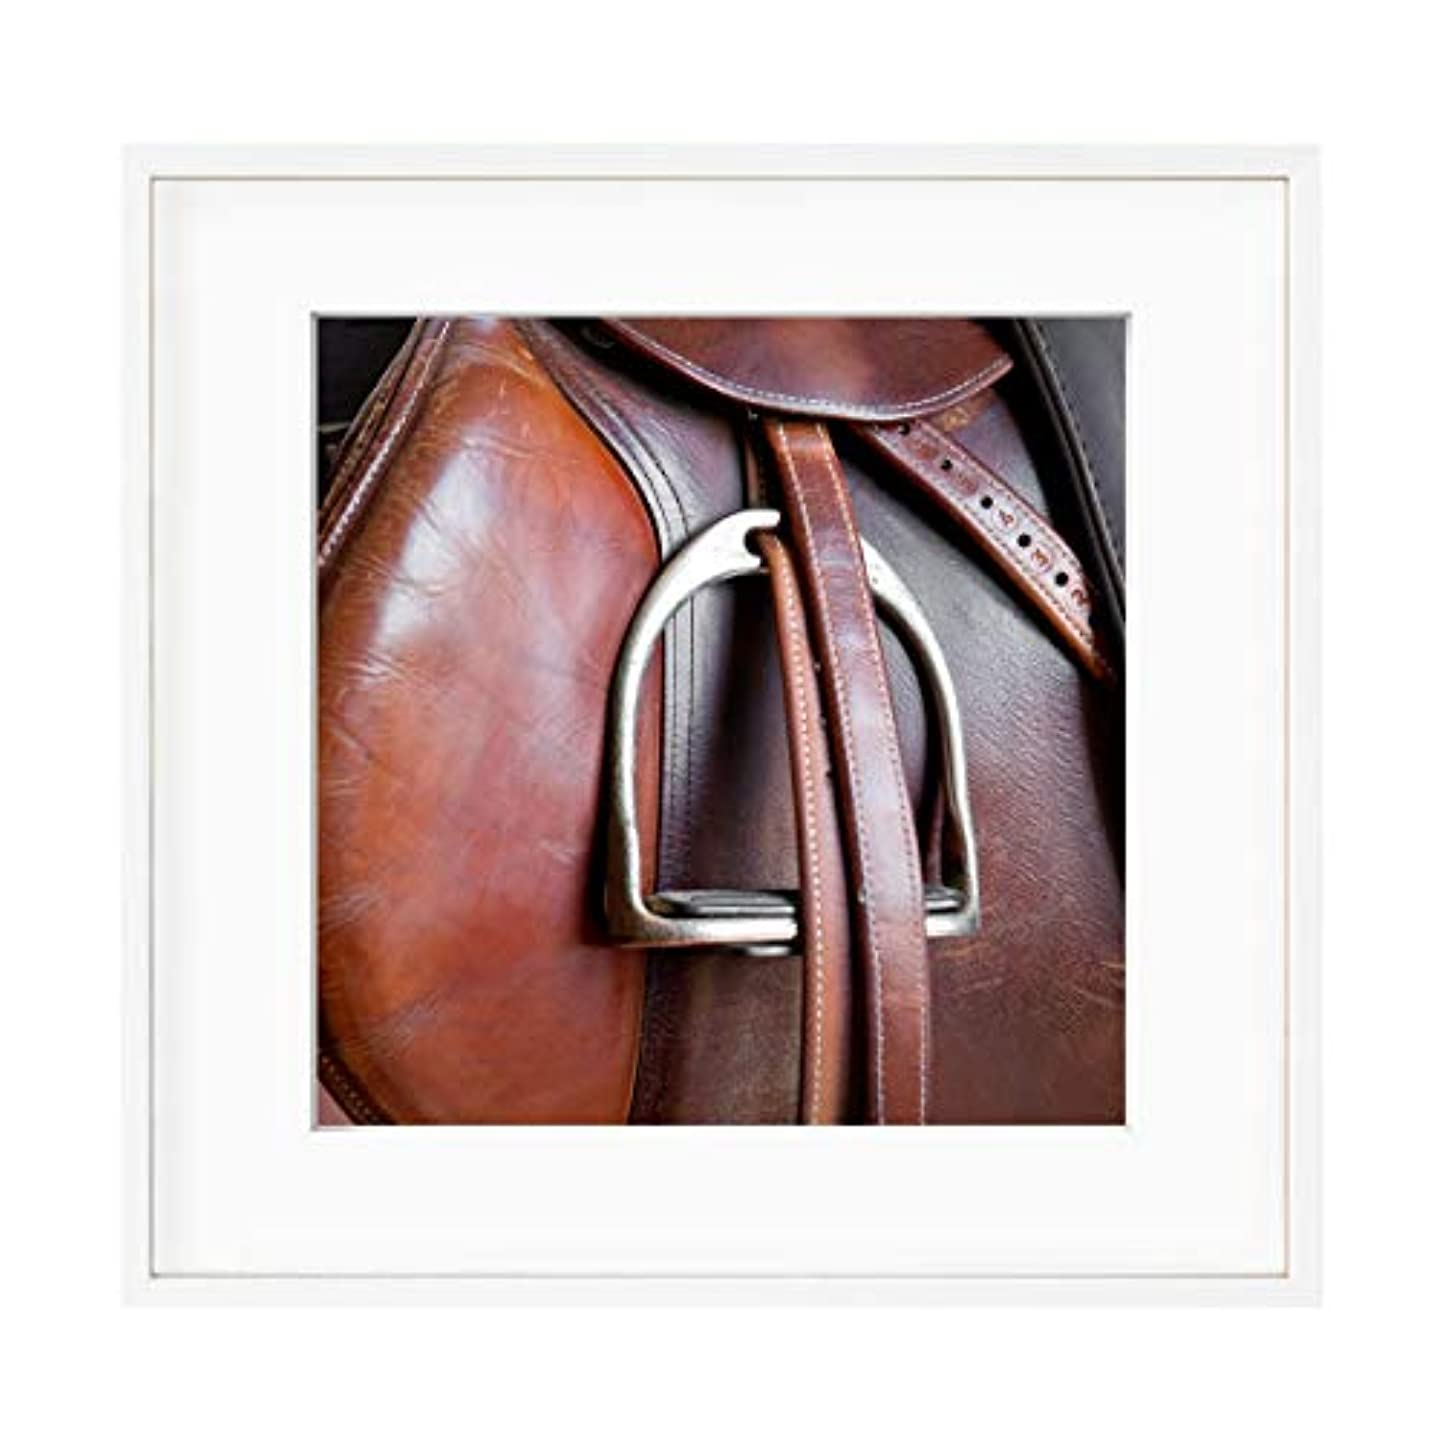 Horse Riding White Varnished Wooden Frame with Mount, Multicolored, 60x60